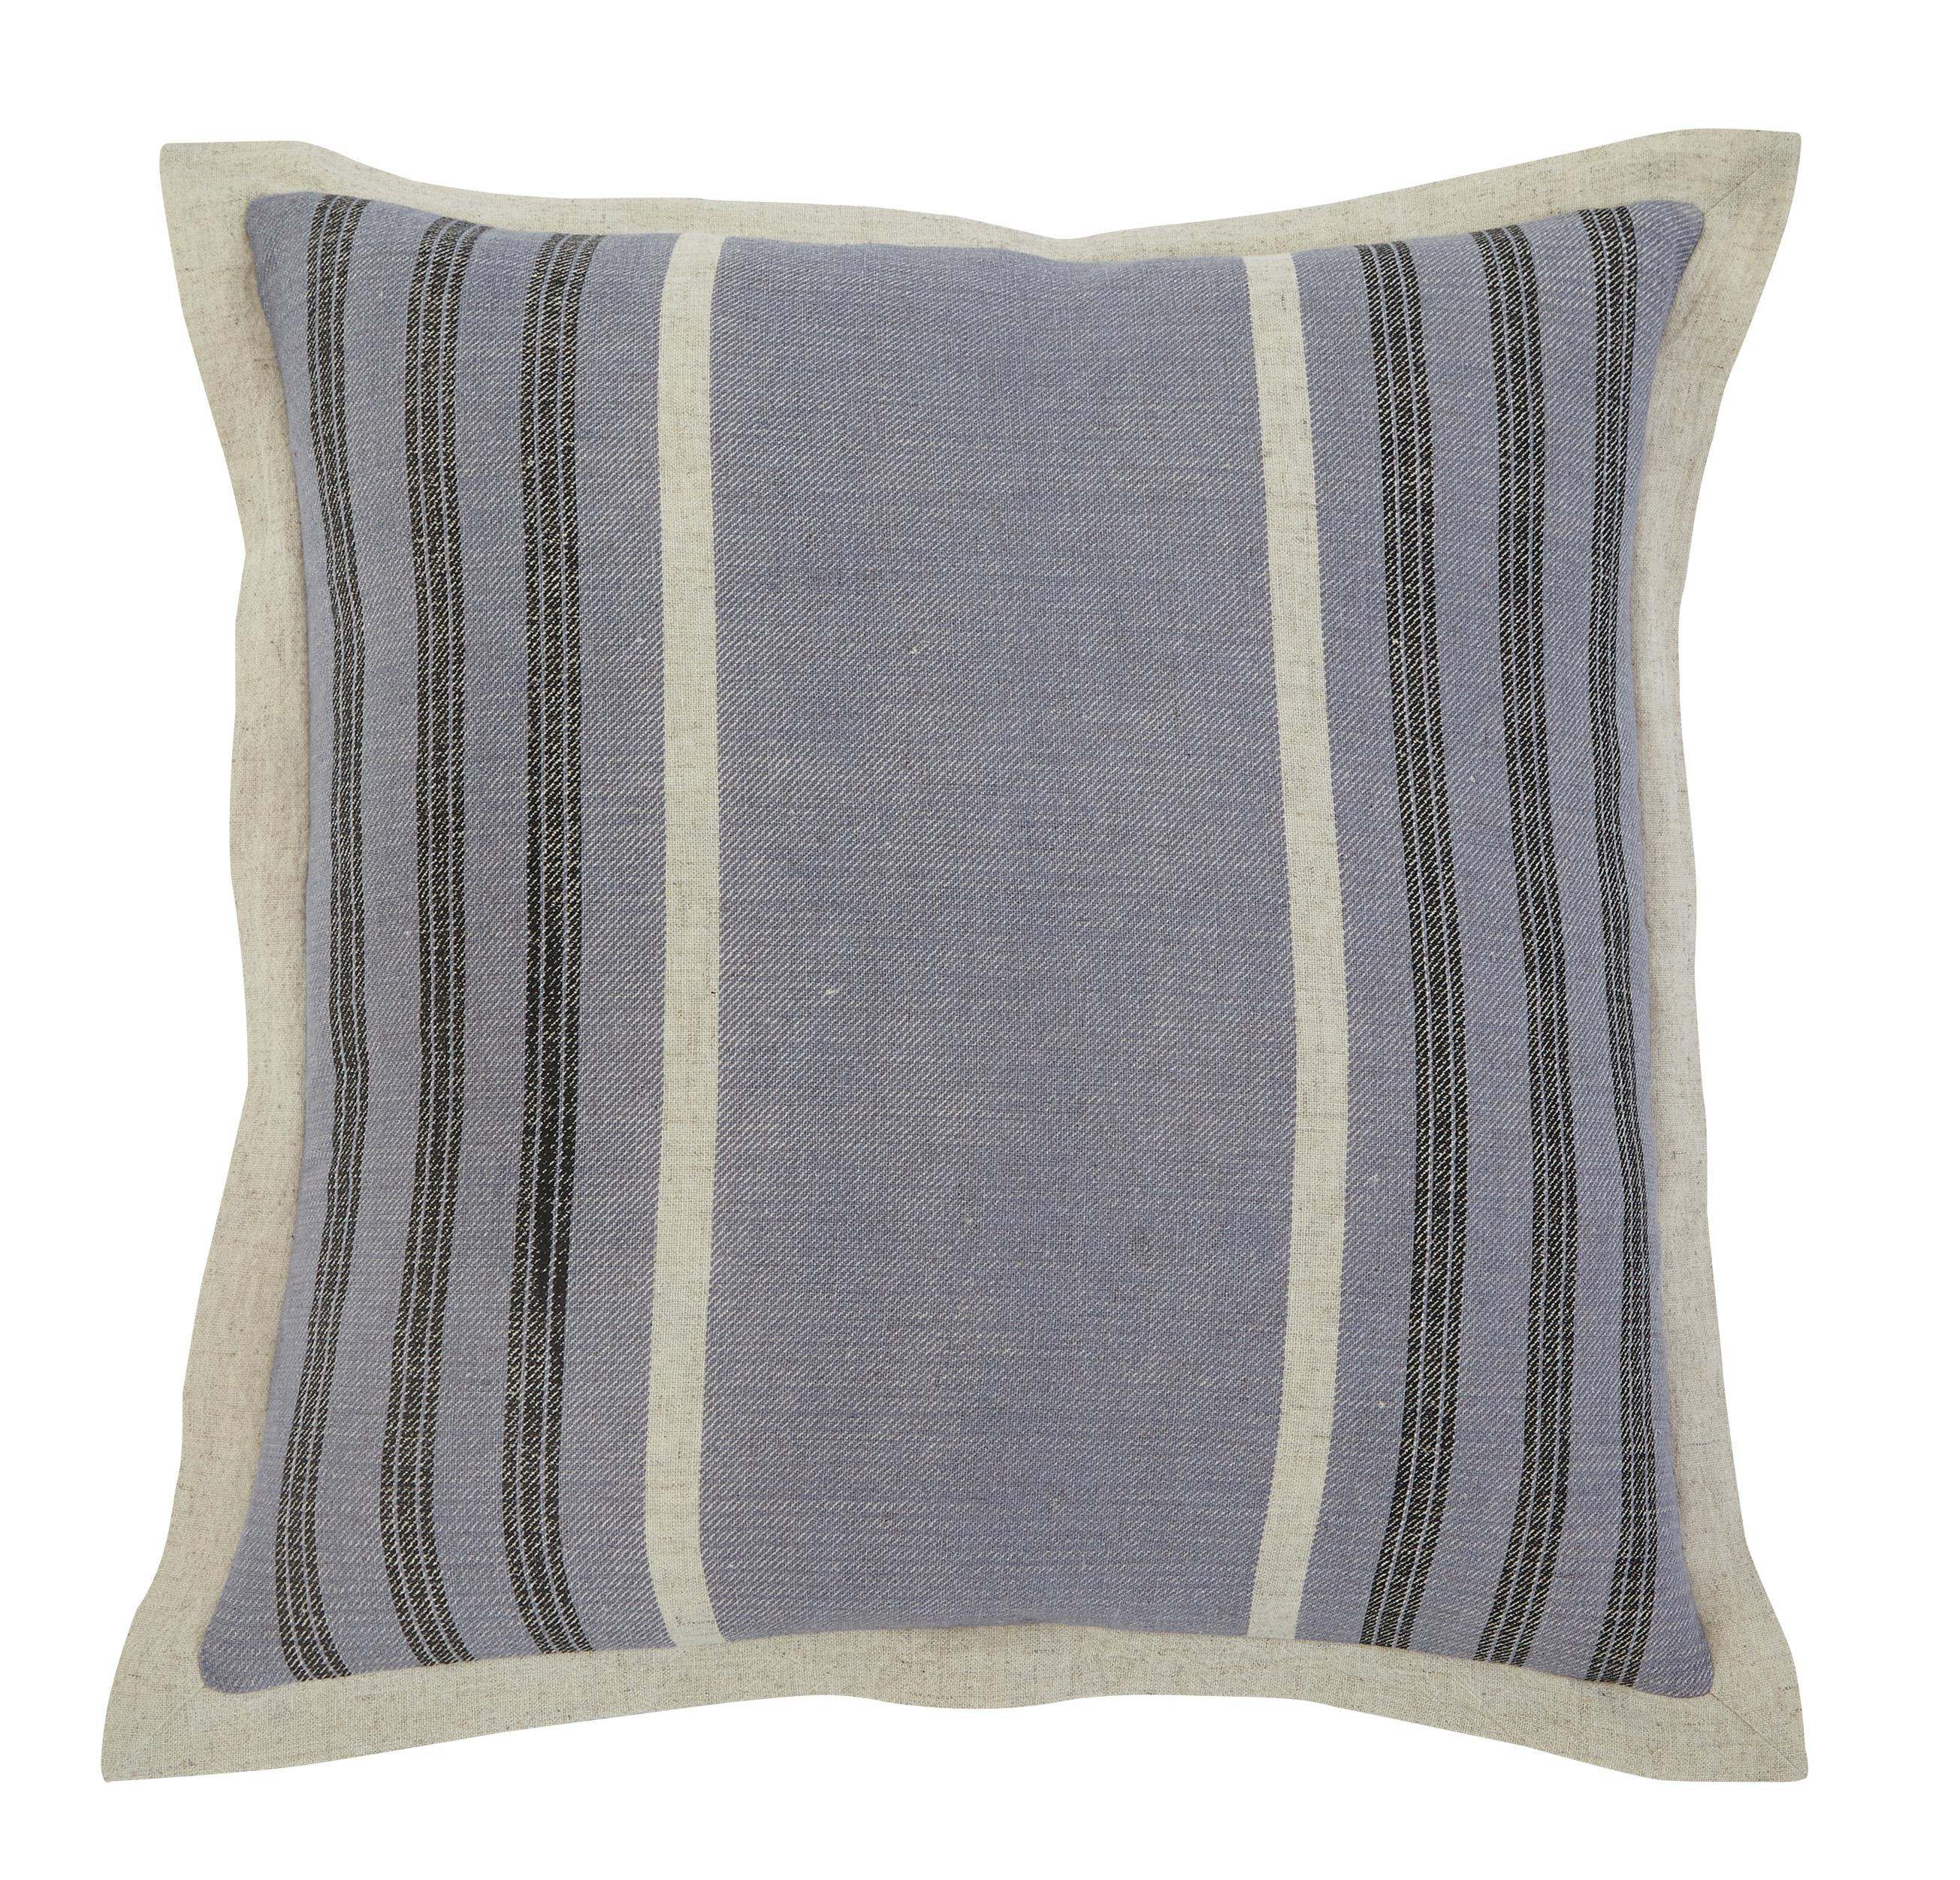 Signature Design by Ashley Pillows Striped - Blue - Item Number: A1000308P